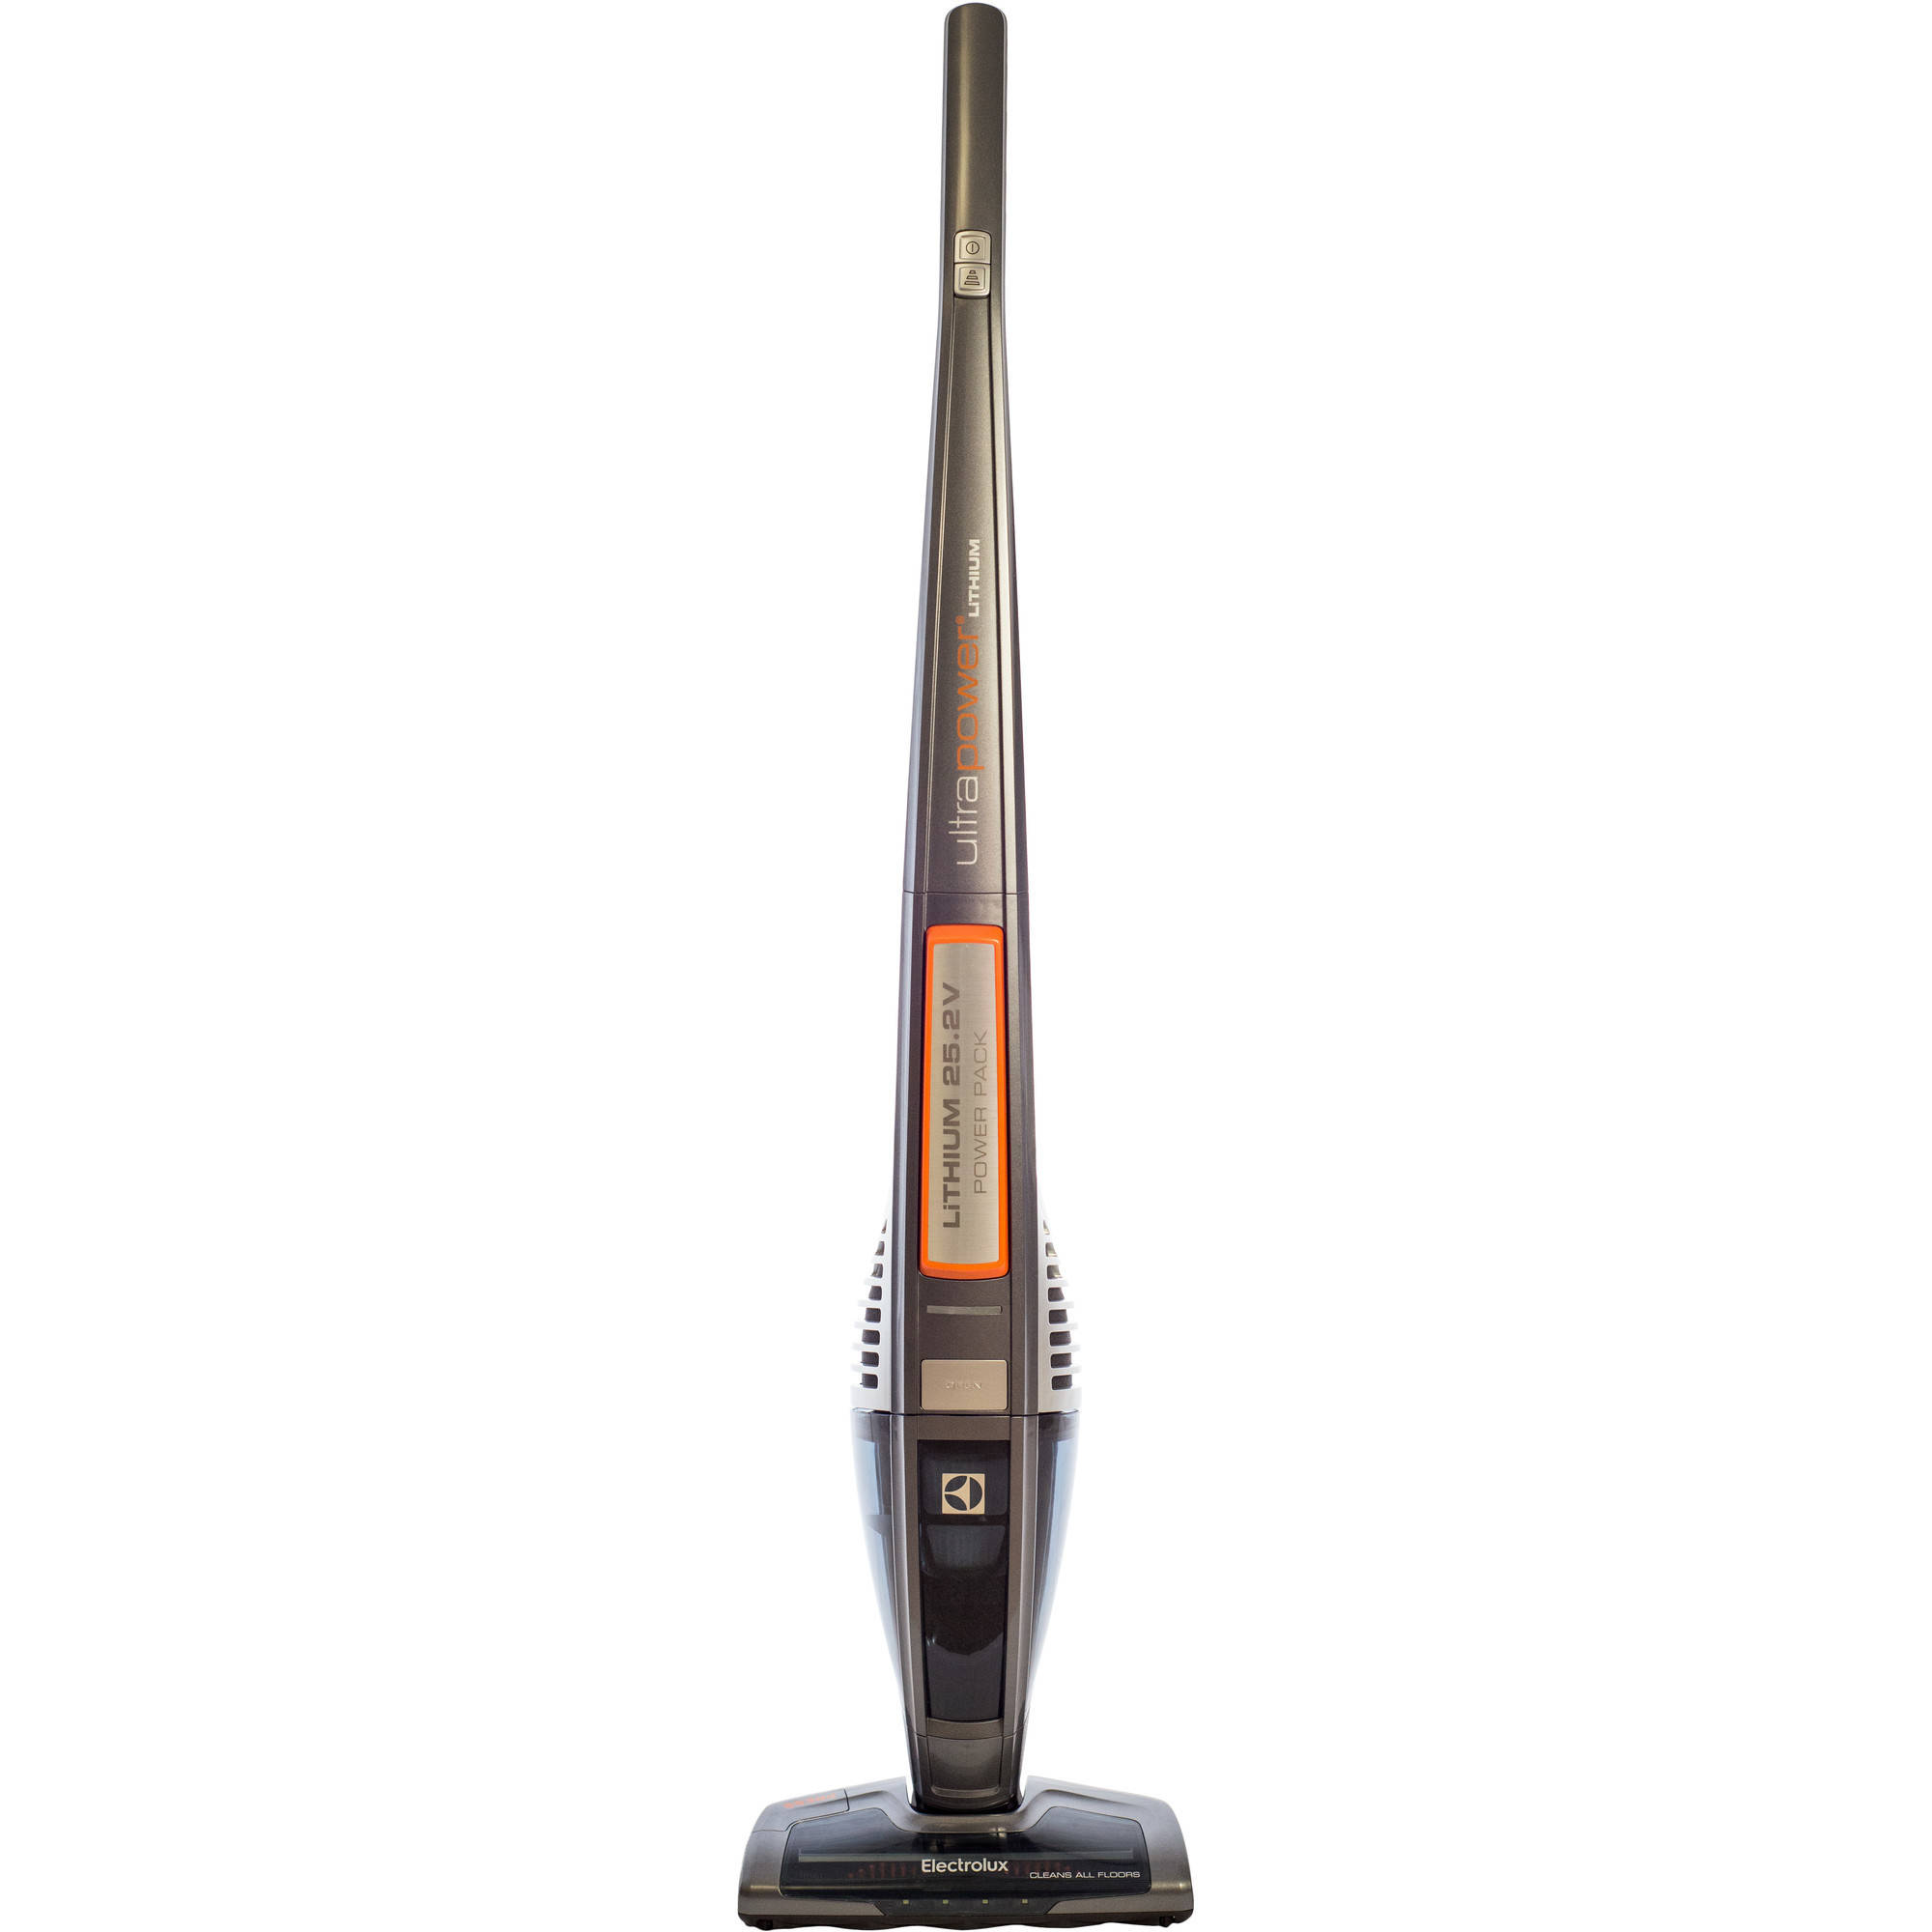 electrolux 2 in 1. electrolux ultrapower lithium ion cordless 2-in-1 stick vacuum, el3020a 2 in 1 n